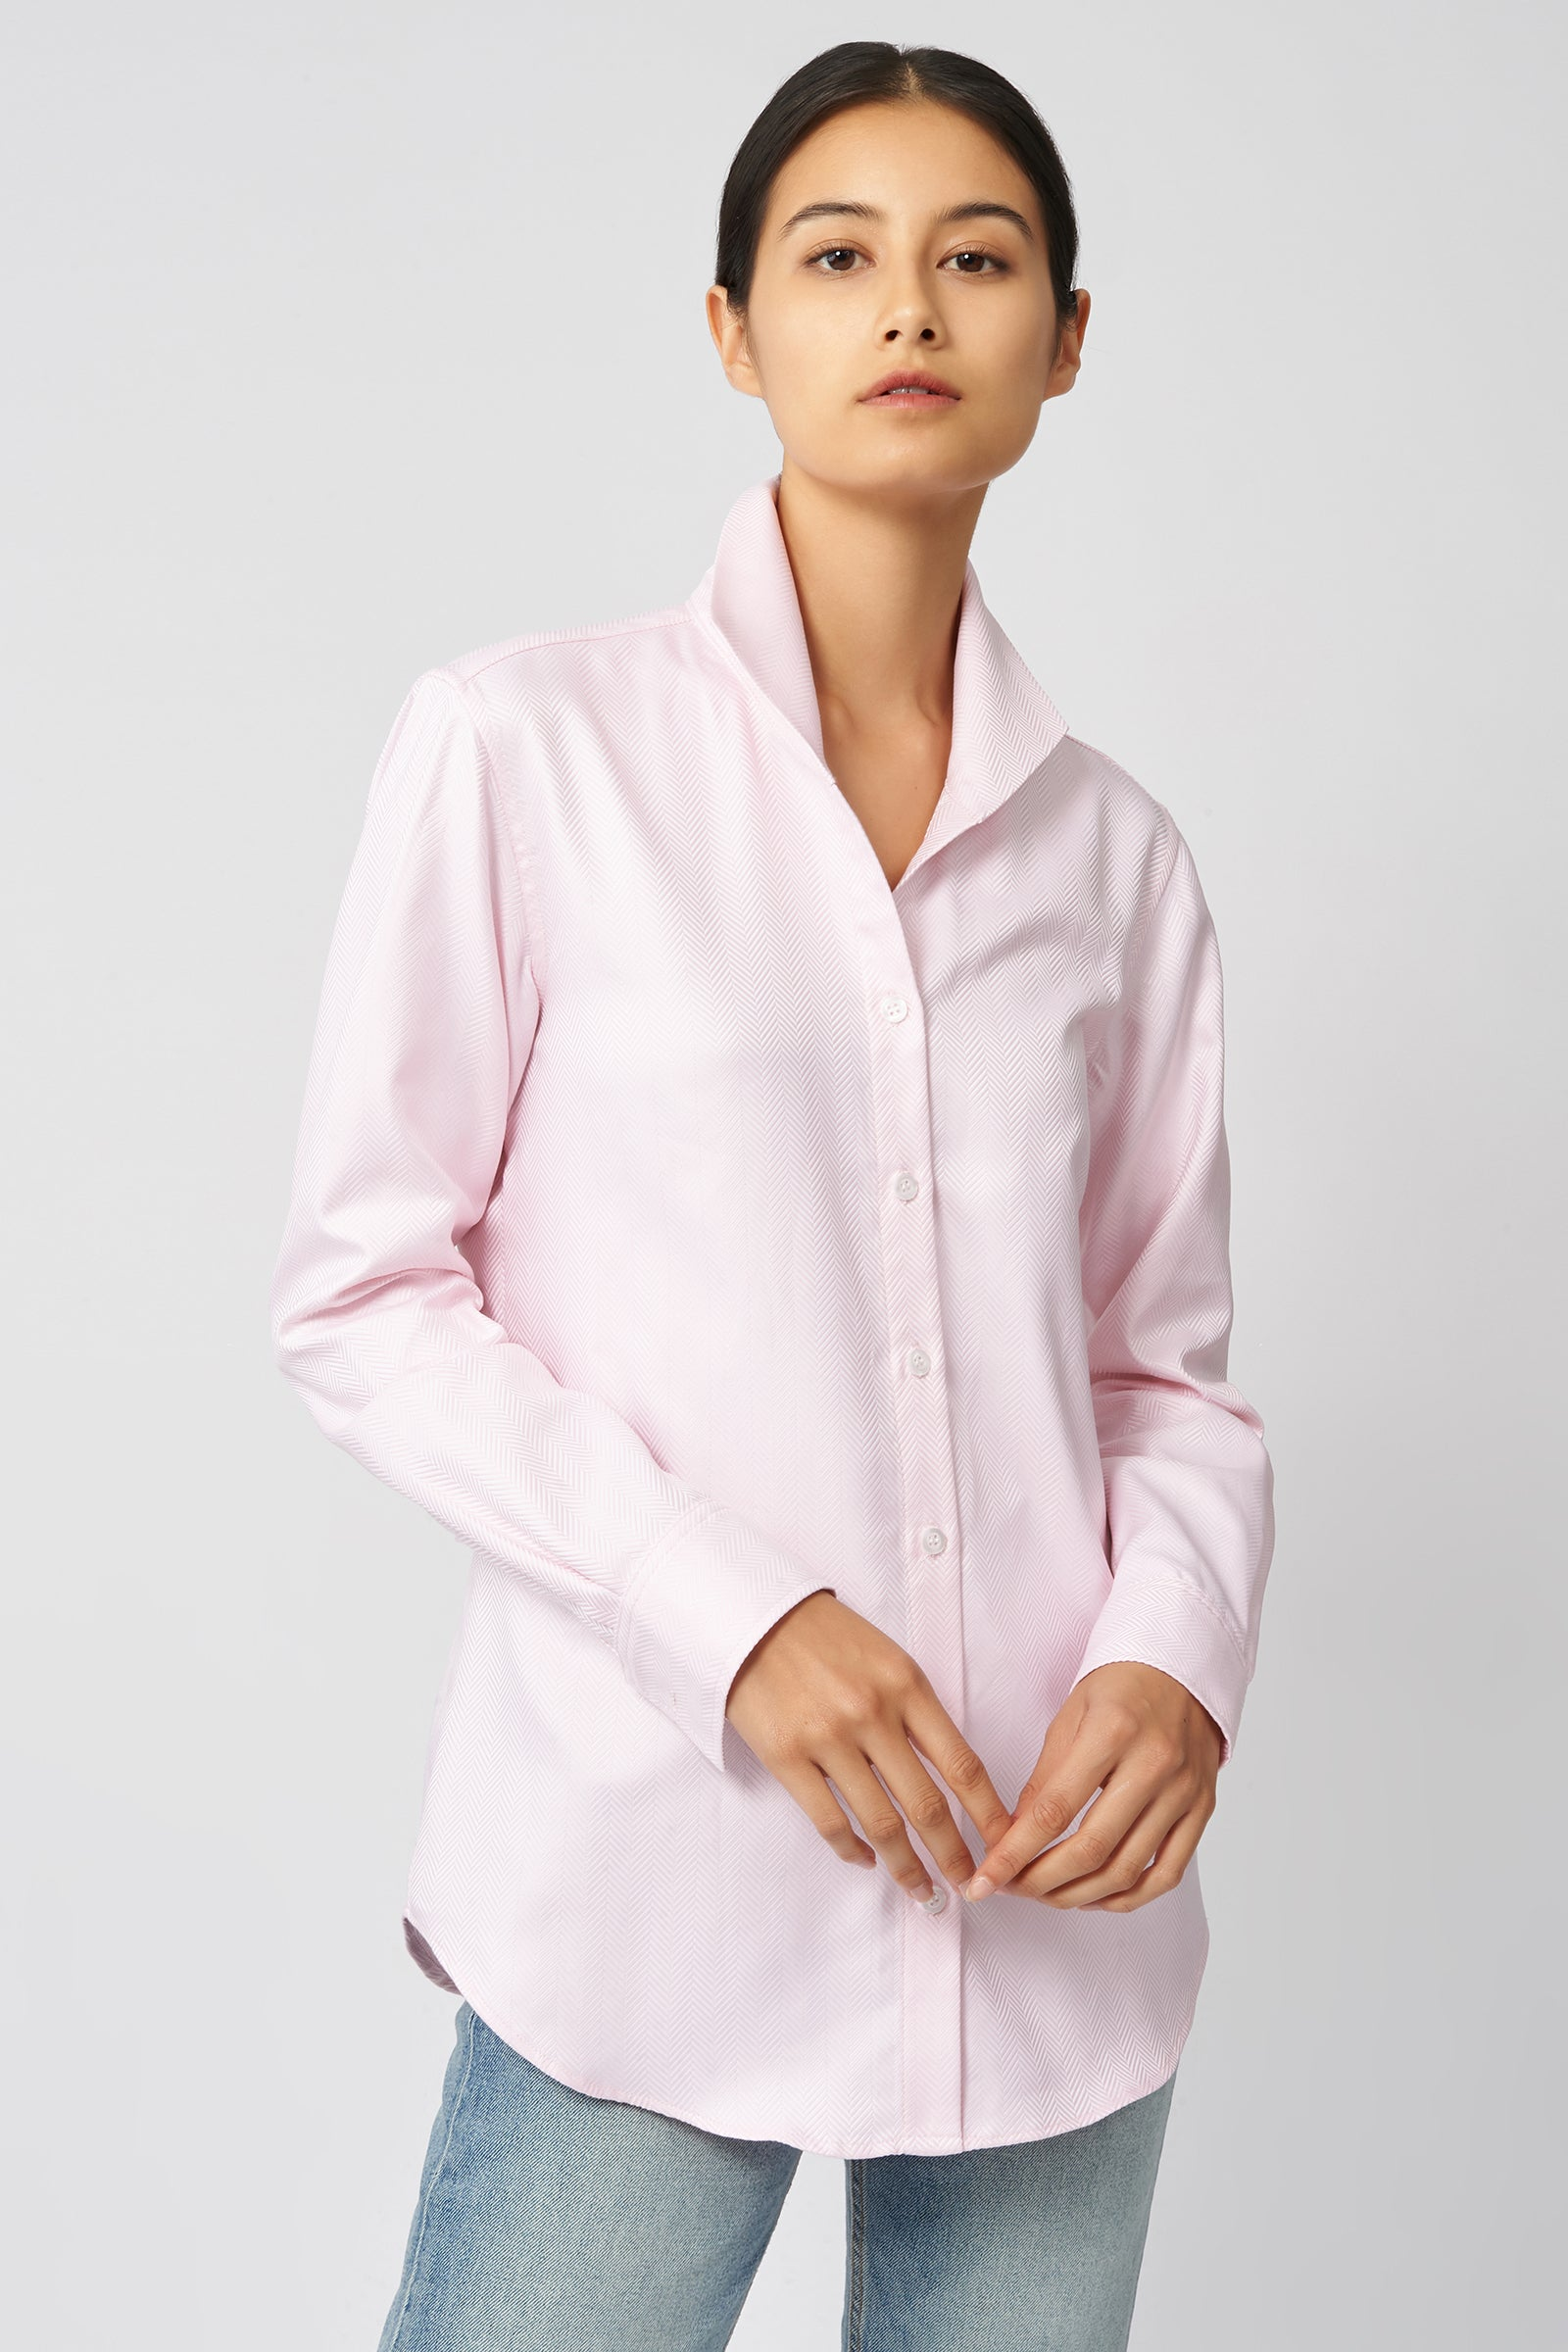 Kal Rieman Ginna Tailored Shirt in Pink Herringbone on Model Front View